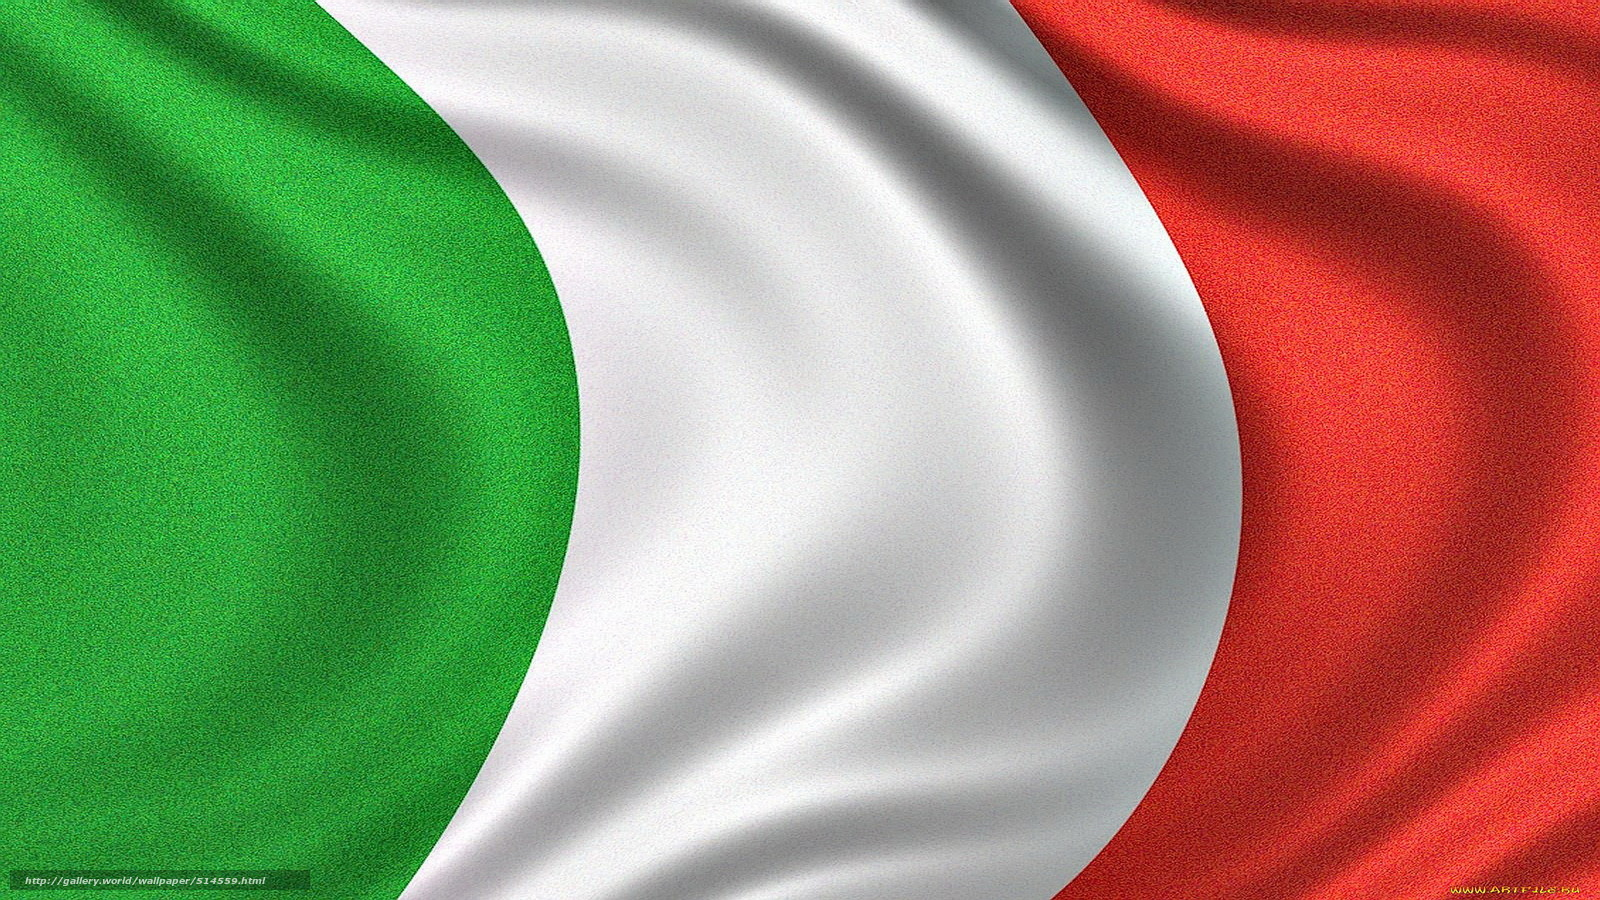 Download wallpaper Flag of Italy,  Italian Flag,  Italian Republic flag - flag of italy free desktop wallpaper in the resolution 1920x1080 — picture №514559